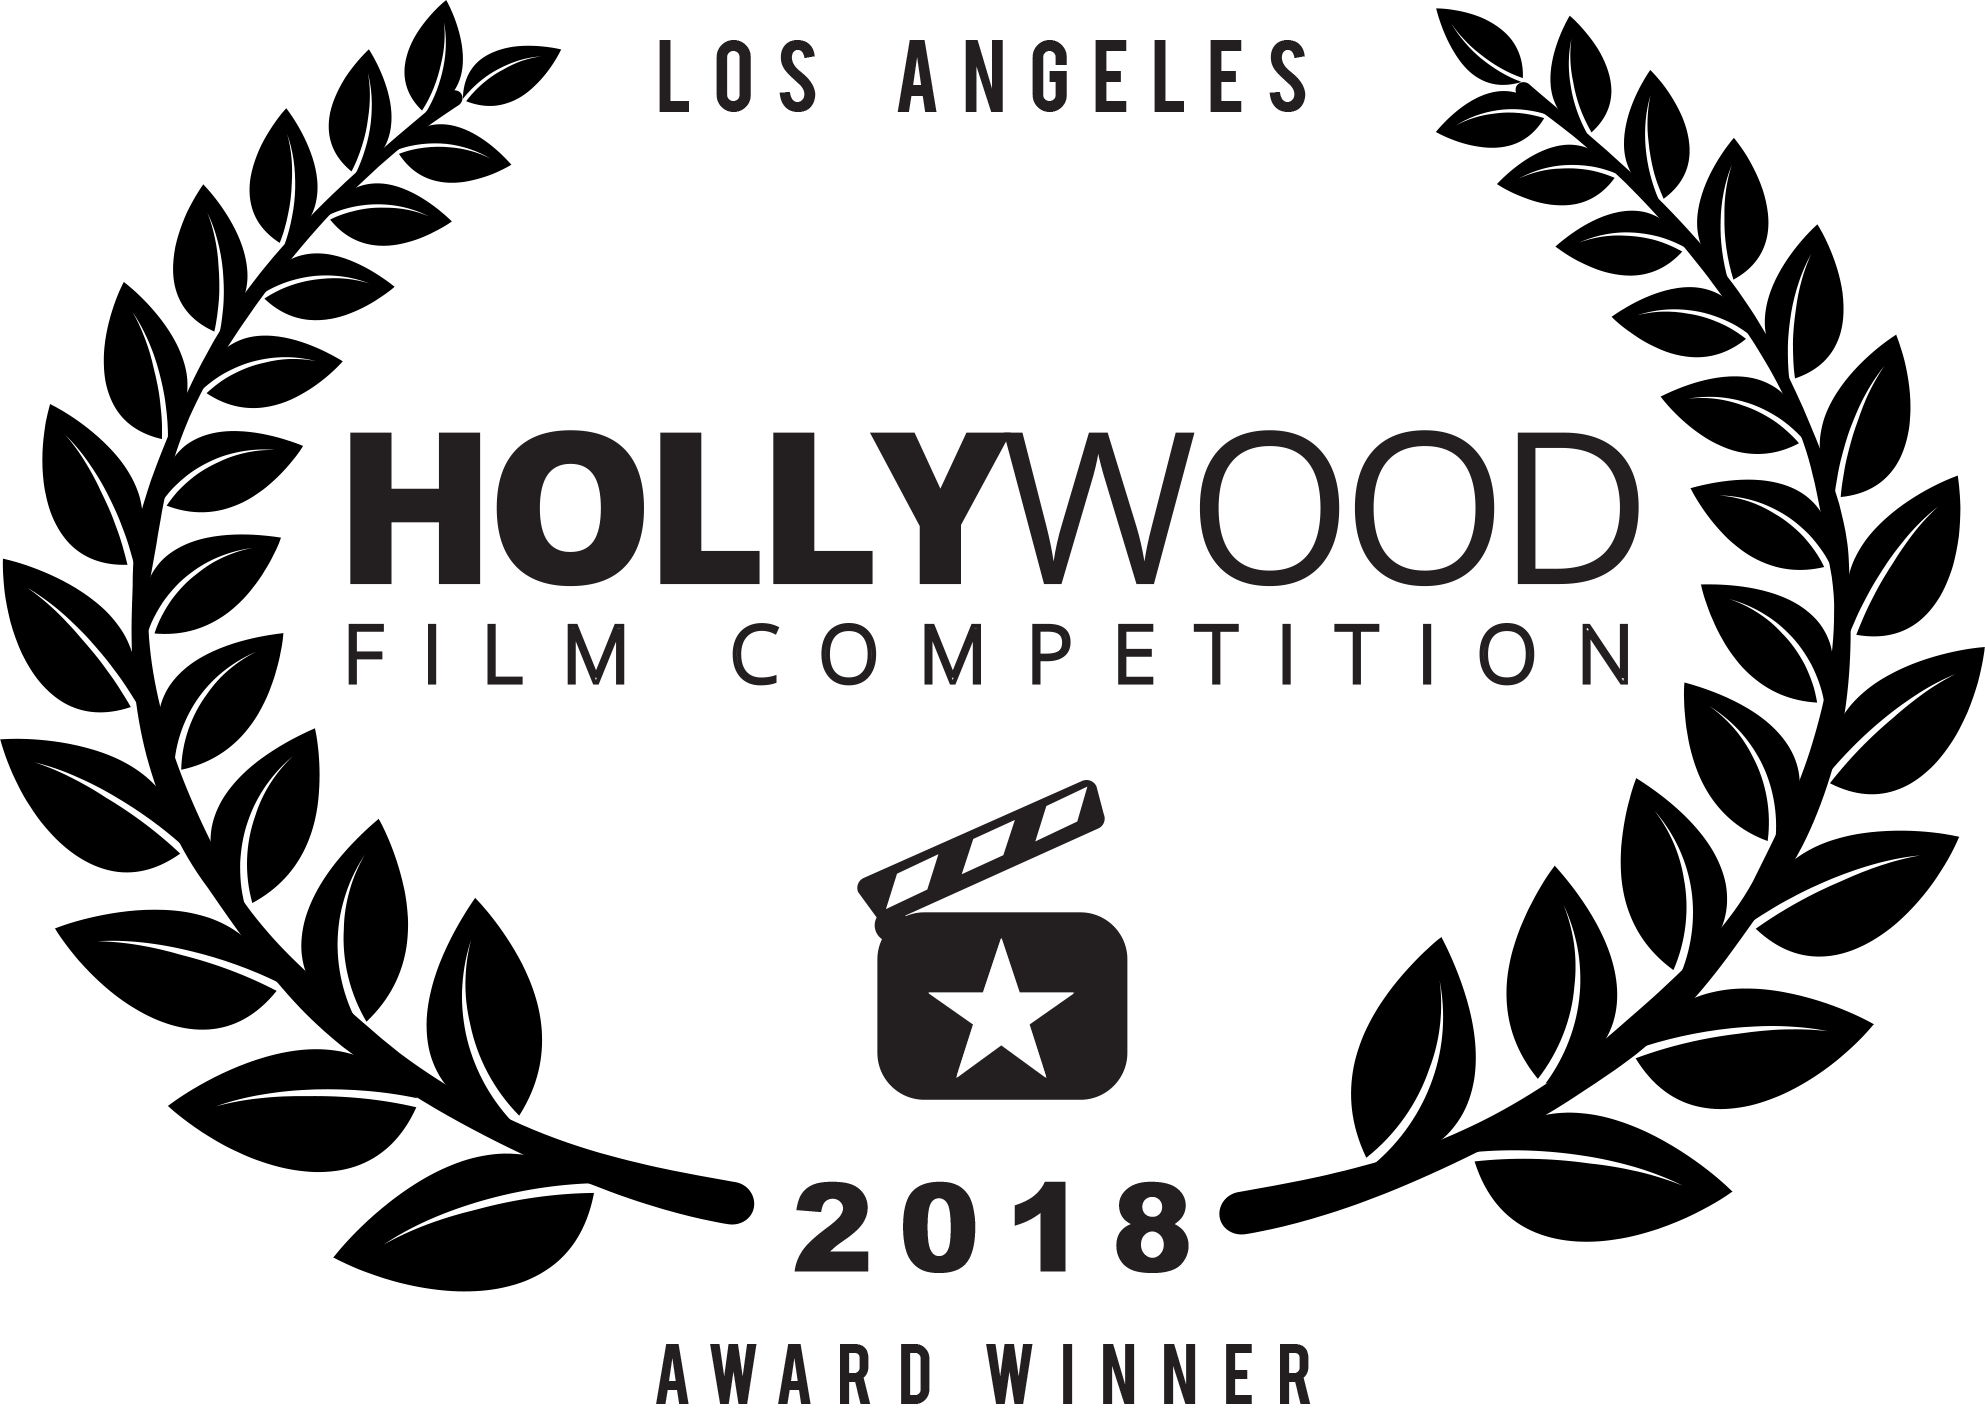 Hollywood Film Competition 2018 Announced Top Honor Diamond Award Best Actor Female Brooke Lewis For Allen Millie Best Director Independent Films Best Actor